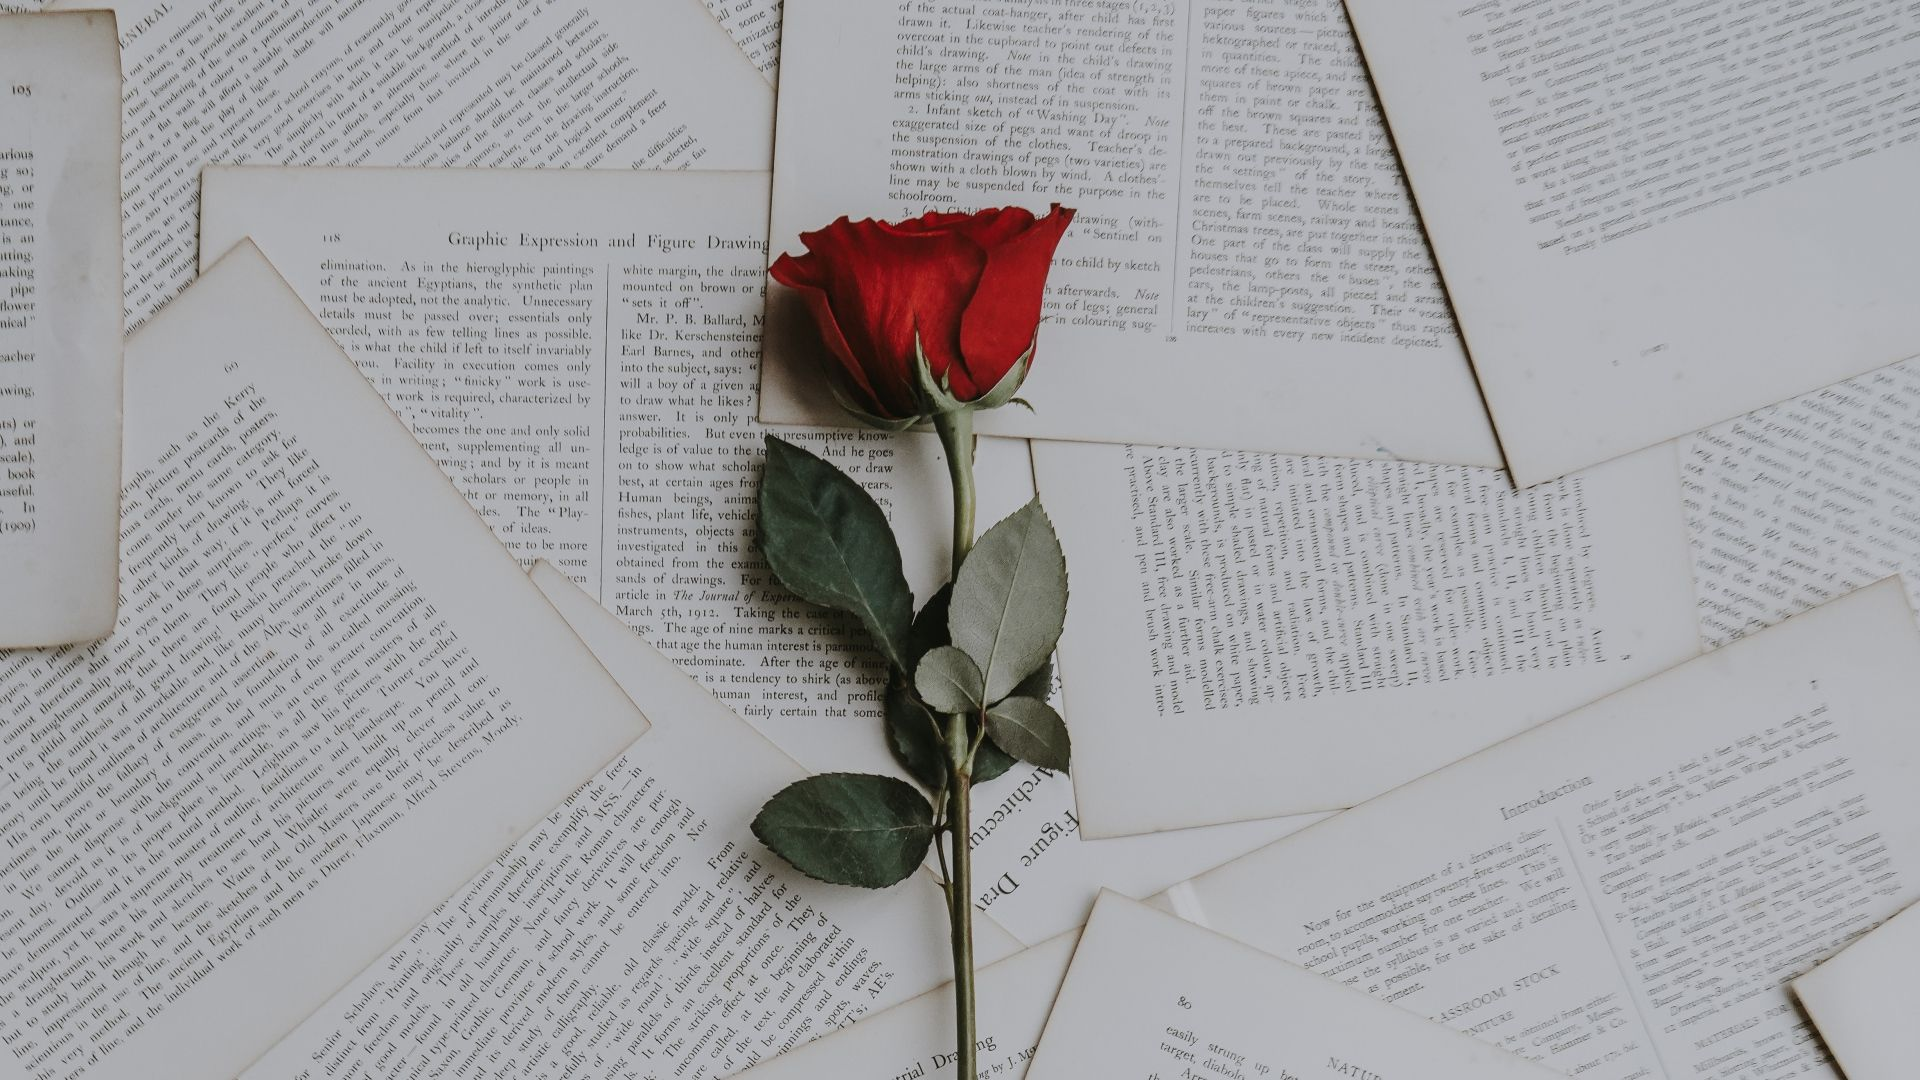 1920x1080 1920x1080 Wallpaper rose, books, texts | backgrounds in 2019 ...